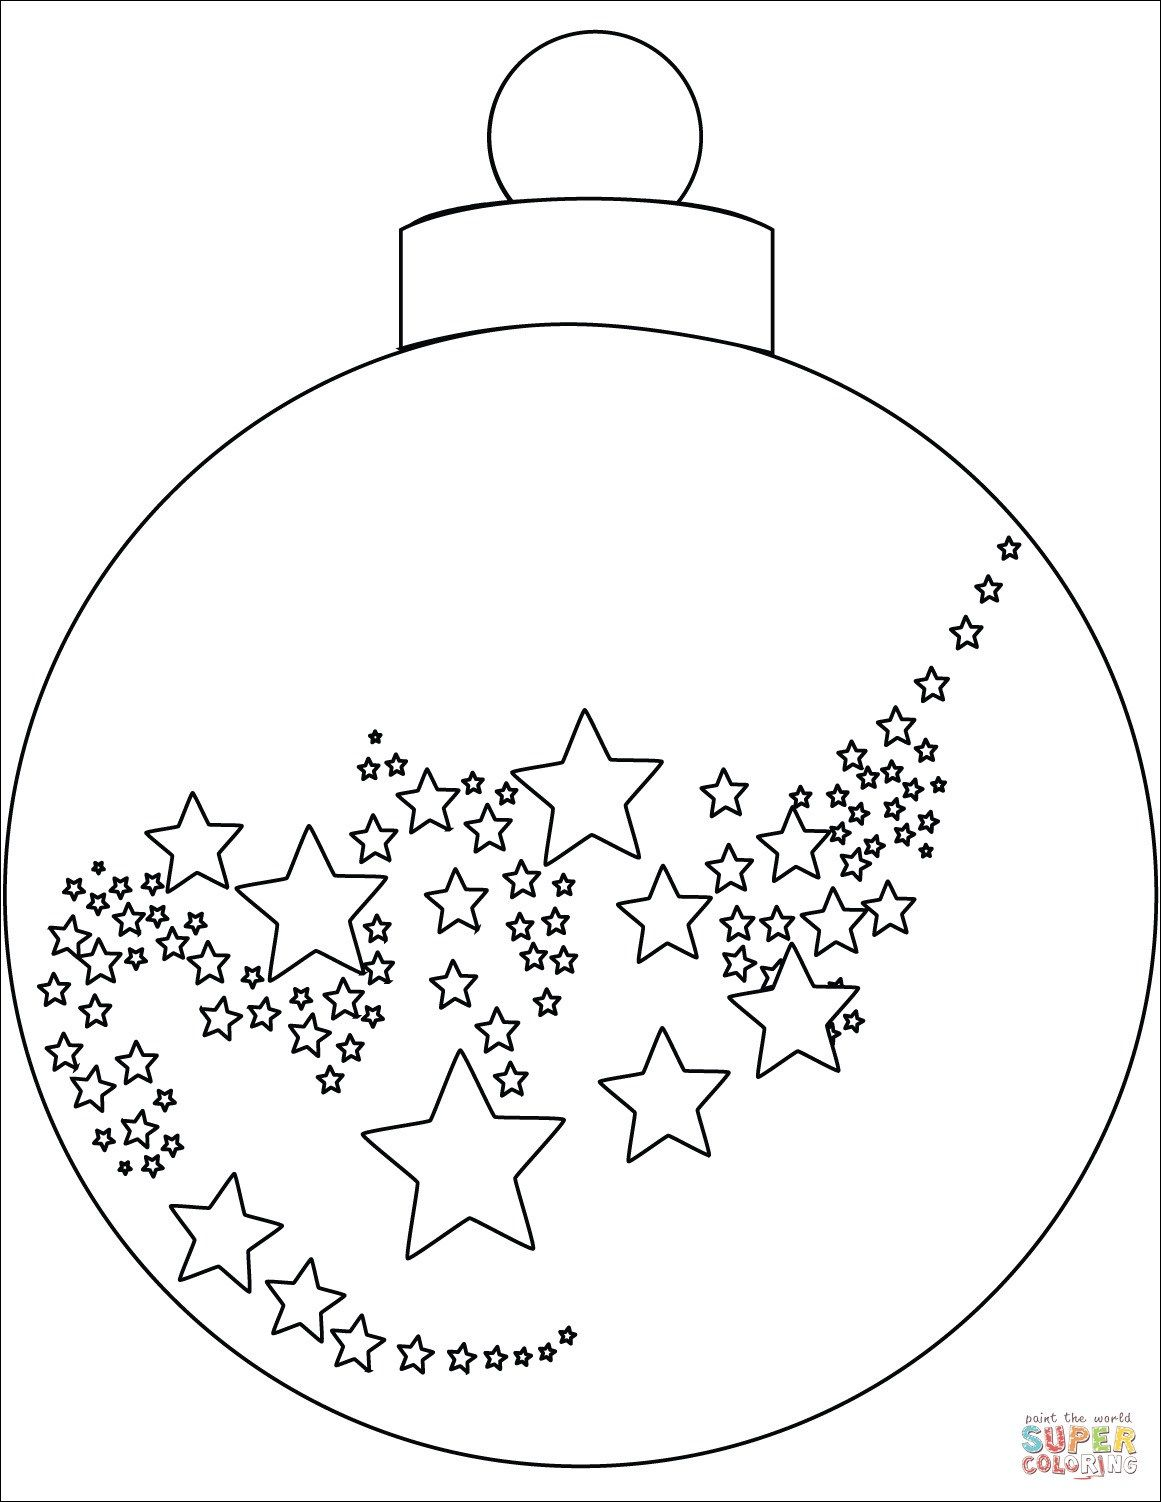 Christmas Ornament Colouring Pages Printable Christmas Ornaments